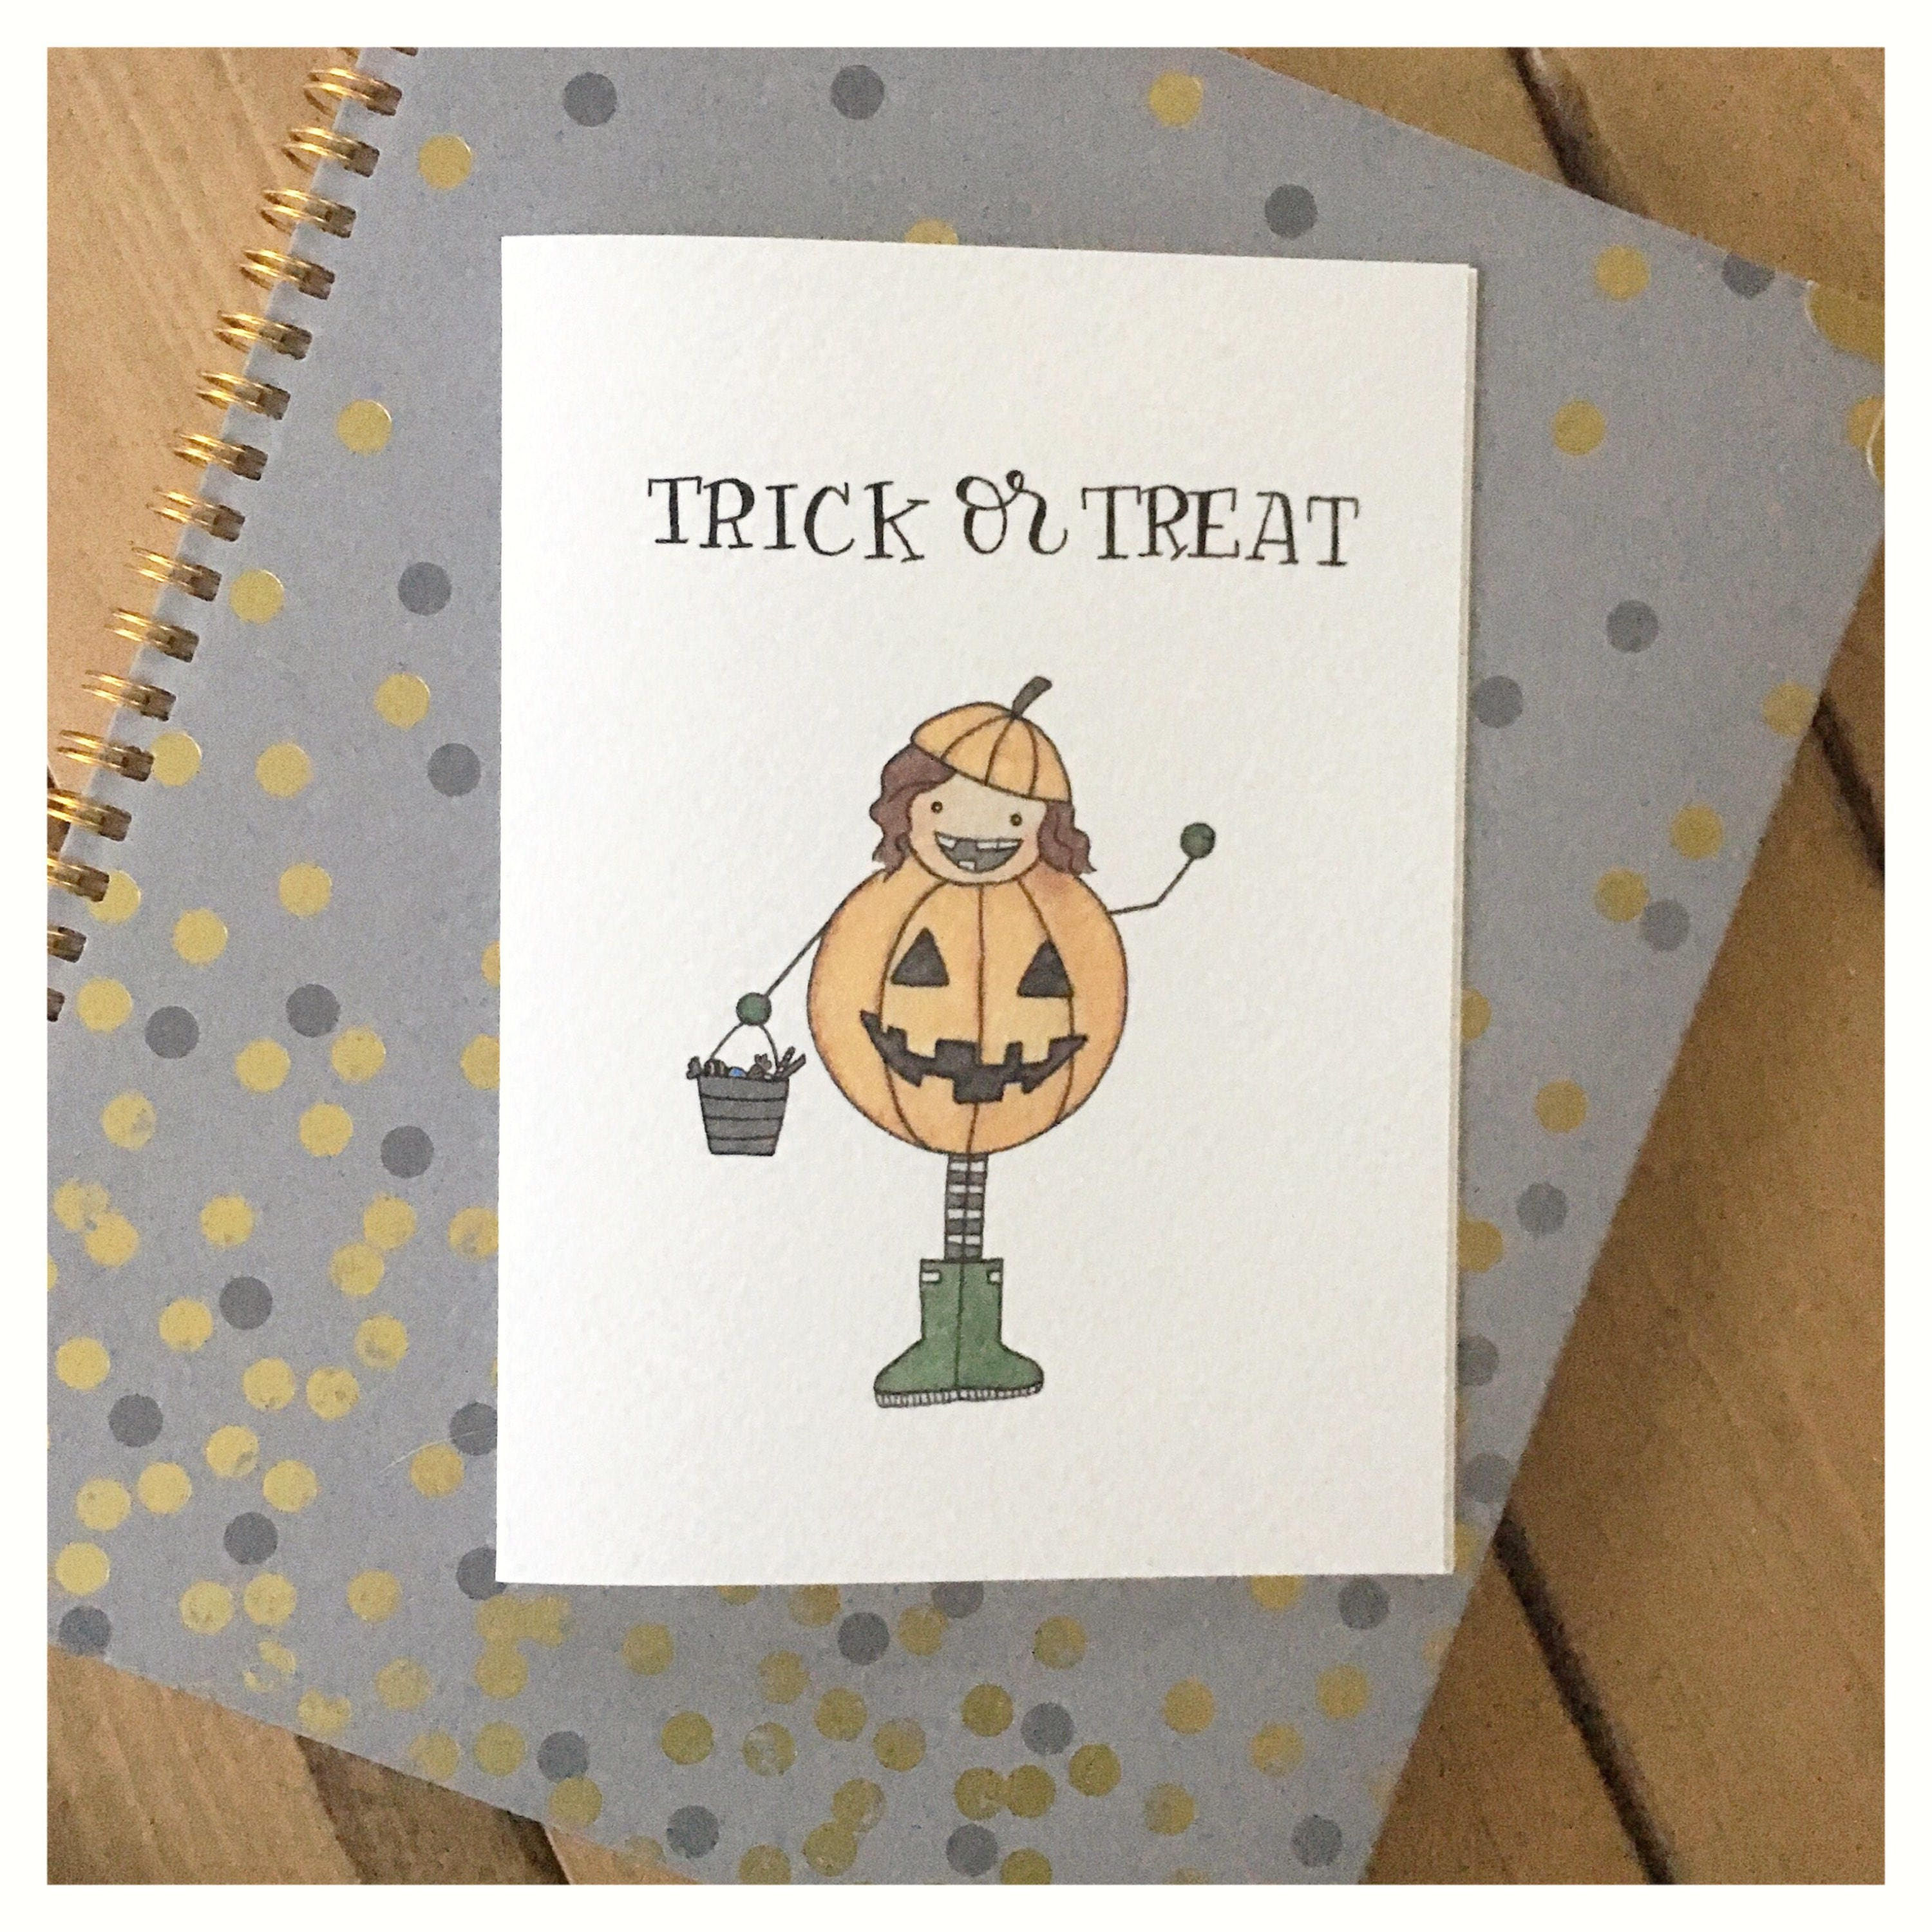 Trick or treat card trick or treat greeting card holiday card trick or treat card trick or treat greeting card holiday card halloween card festive card cute card pumpkin card funny cards pun m4hsunfo Choice Image